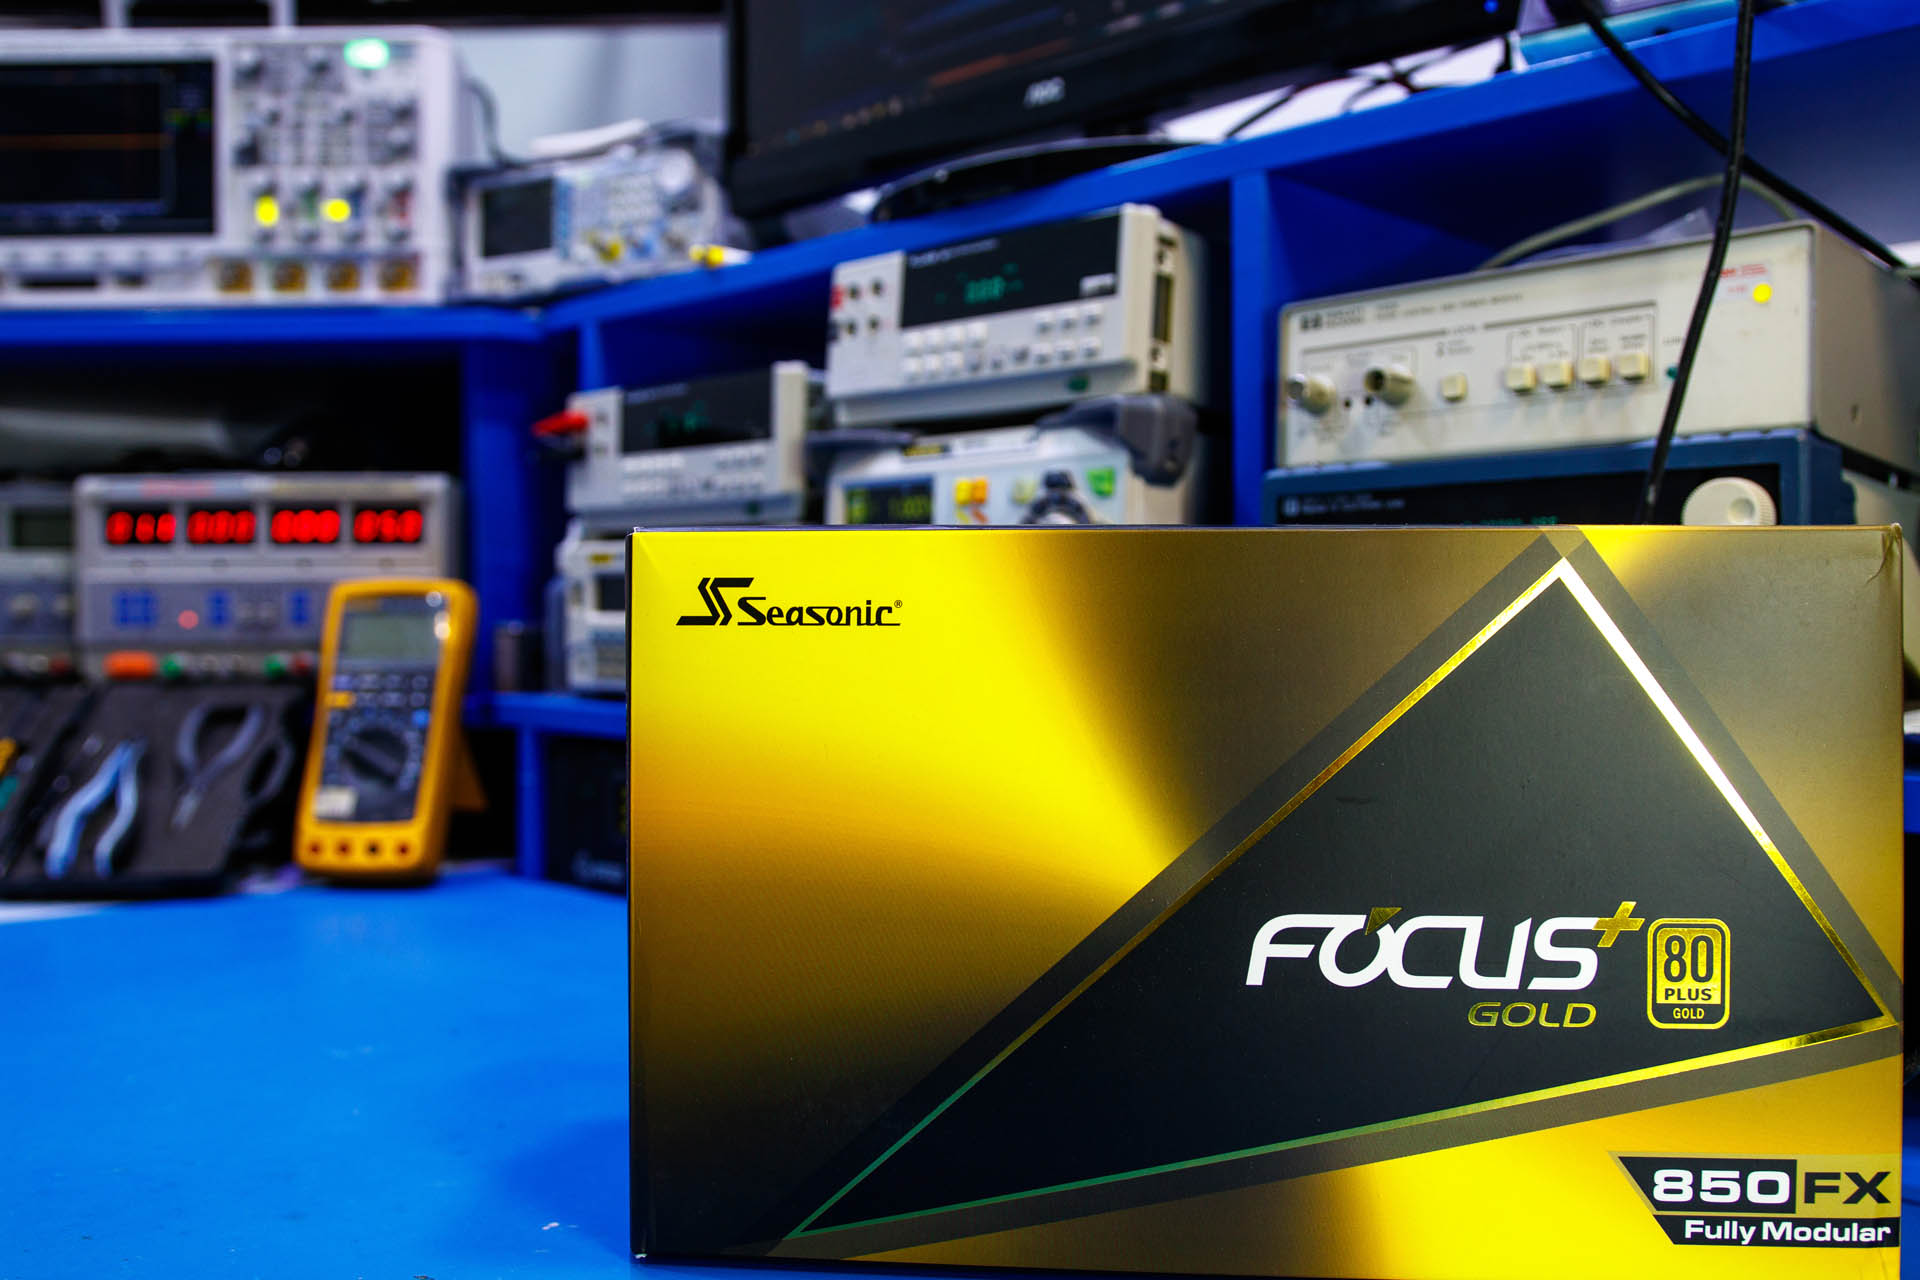 Seasonic FOCUS Plus Gold 850FX recenzija